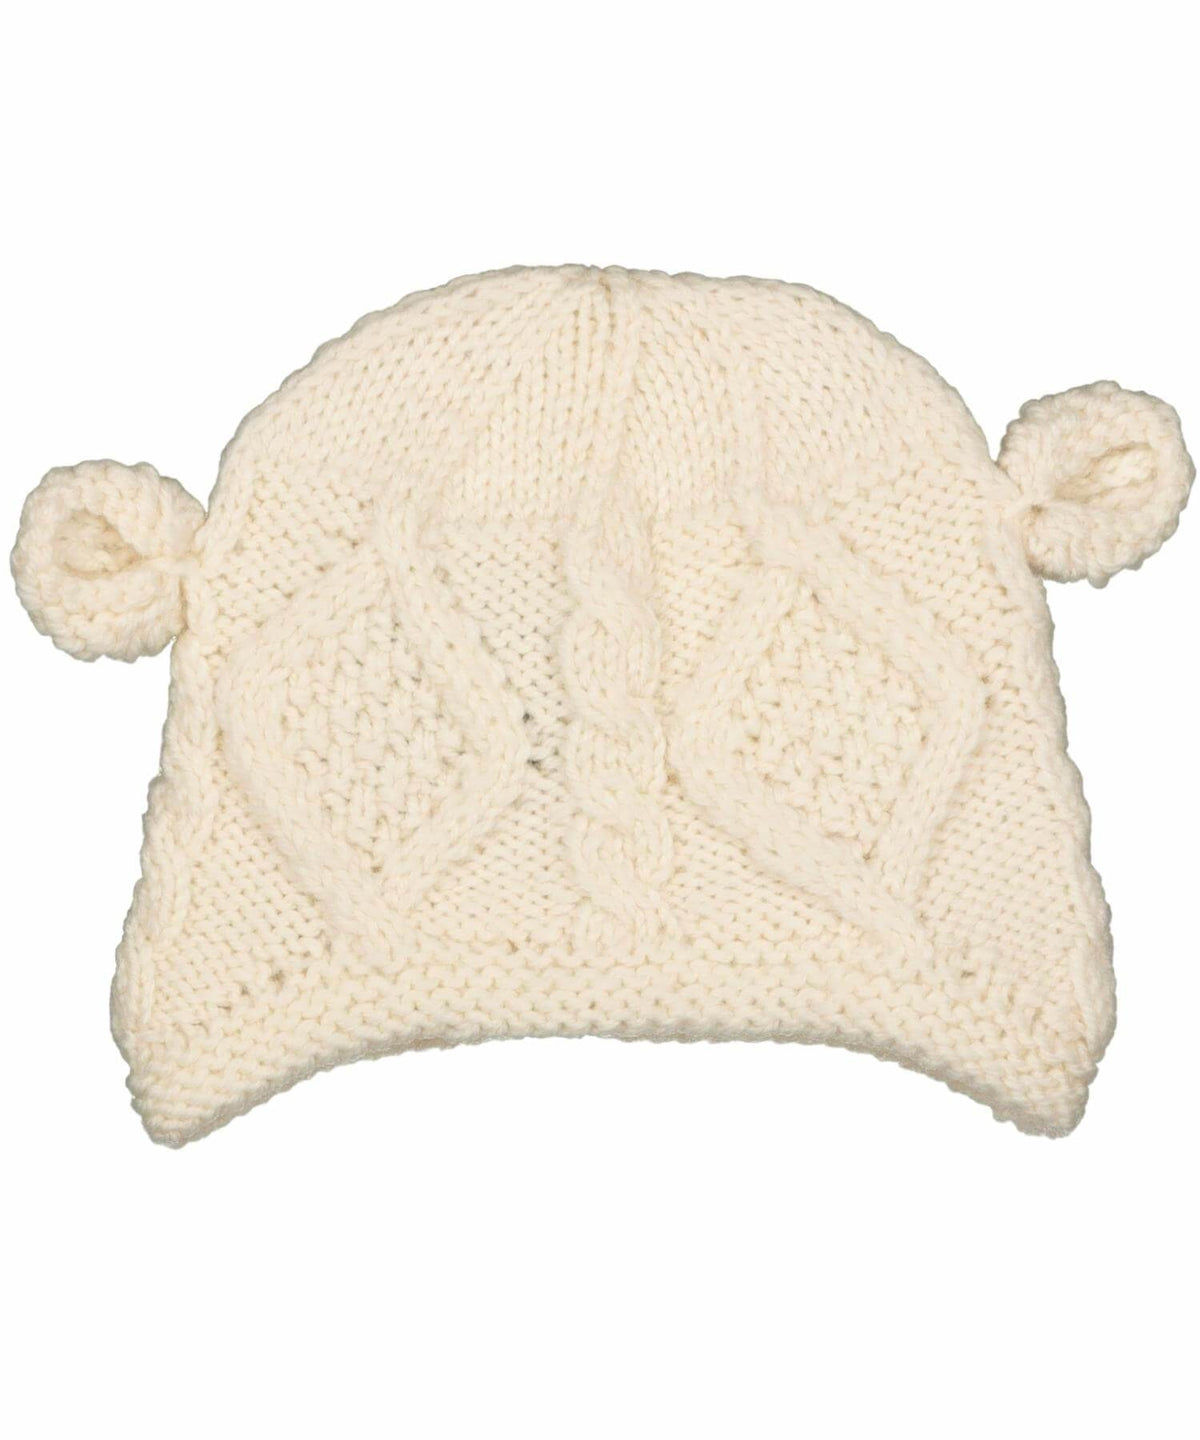 Kids Hat with Ears - [Aran Woollen Mills] - Childrens Hats, Scarves & Gloves - Irish Gifts